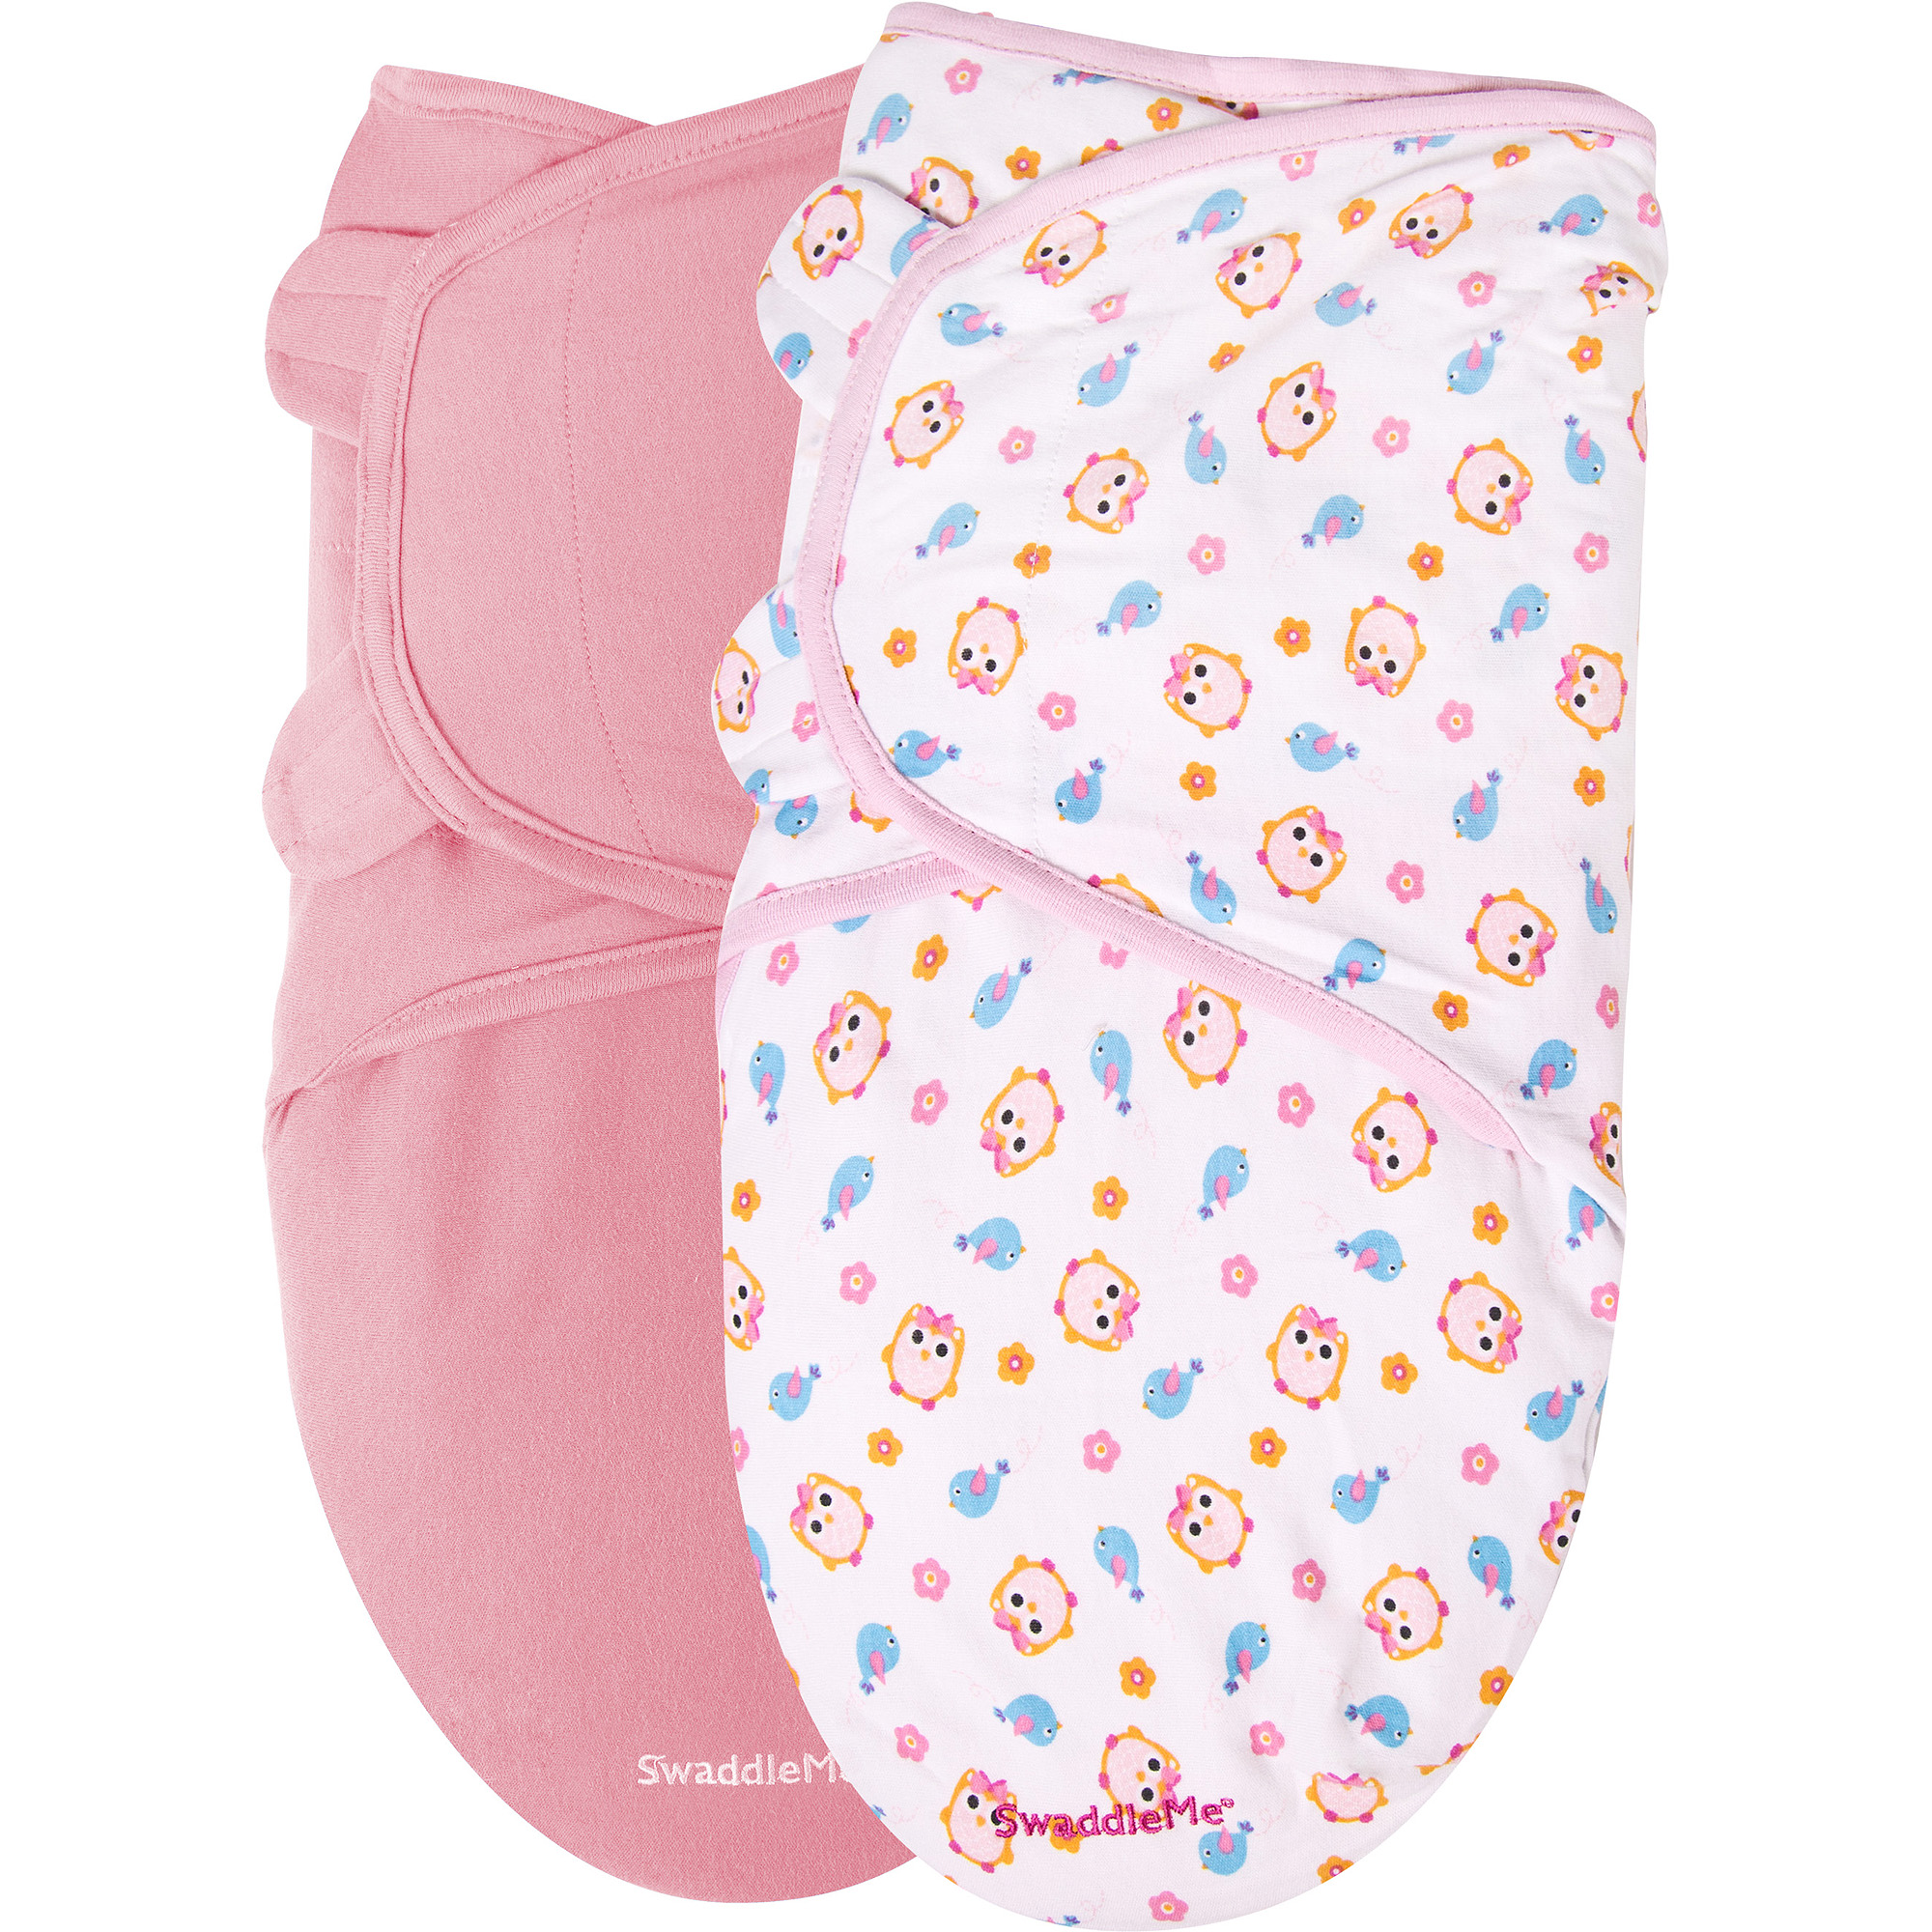 Garanimals SwaddleMe Infant Wrap, 2-Pack, Sweet Tweet, Size 0-6 Months